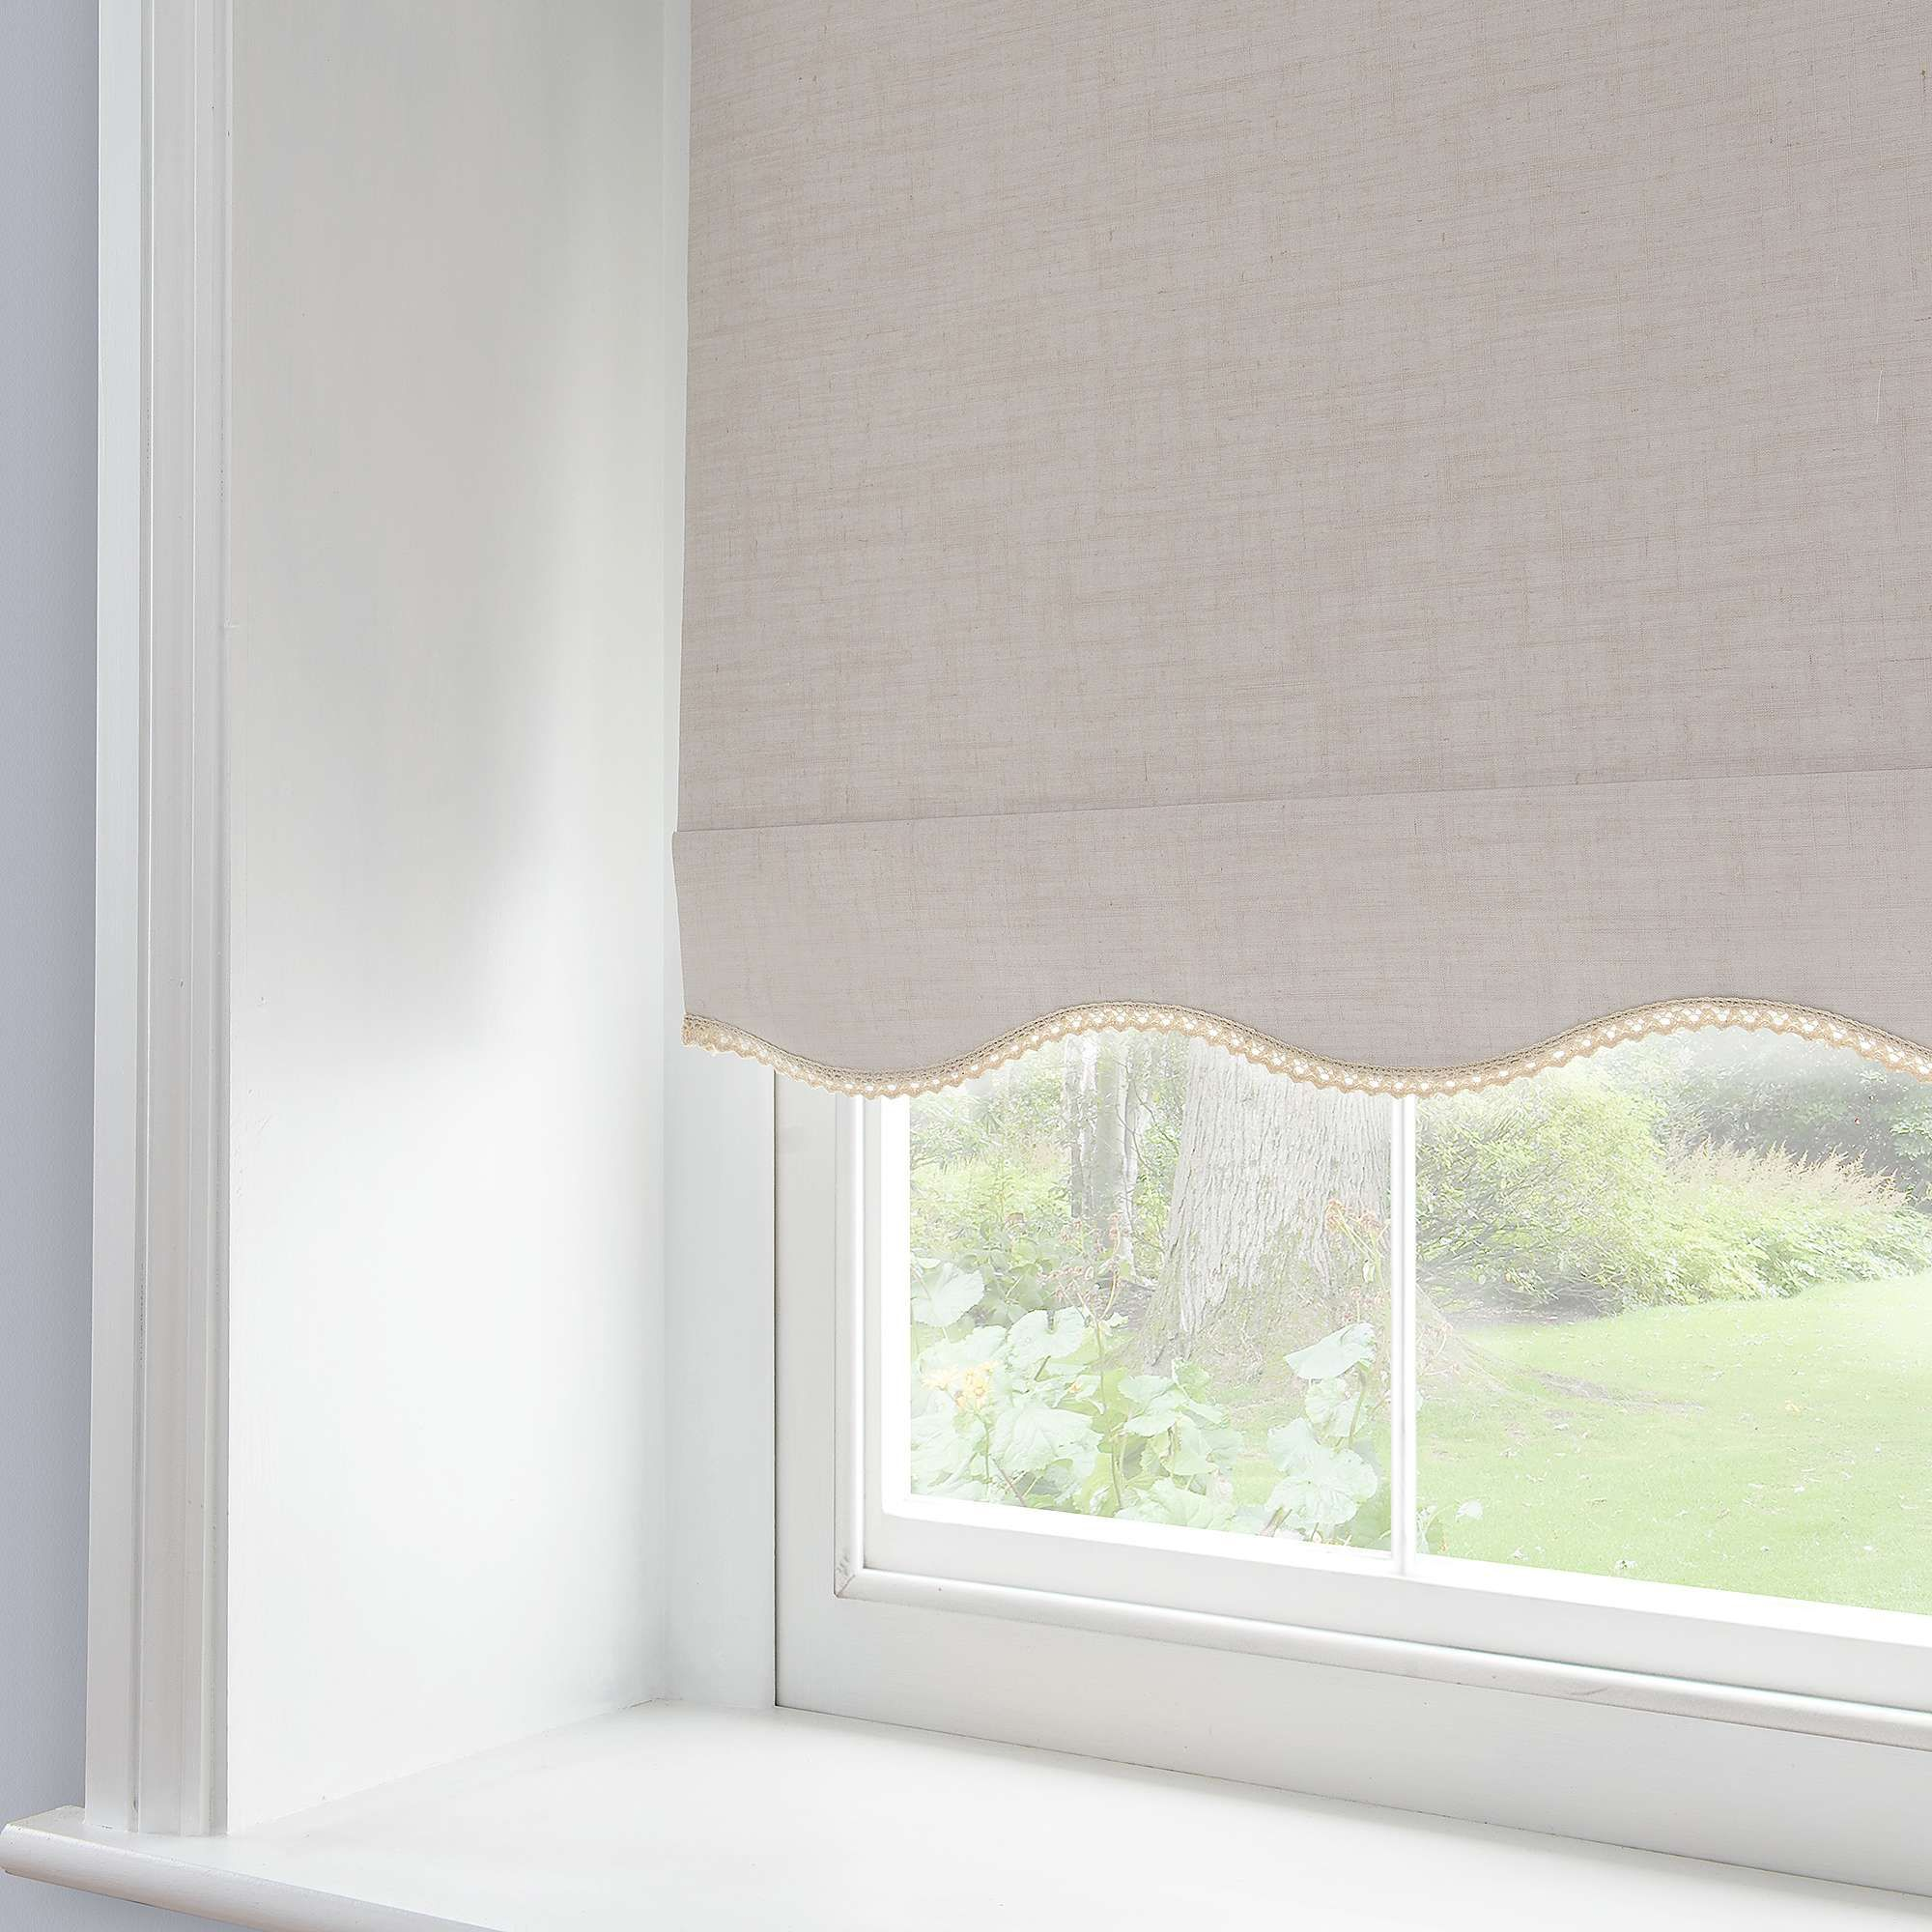 Lace Trim Blackout Roller Blind Dunelm Window